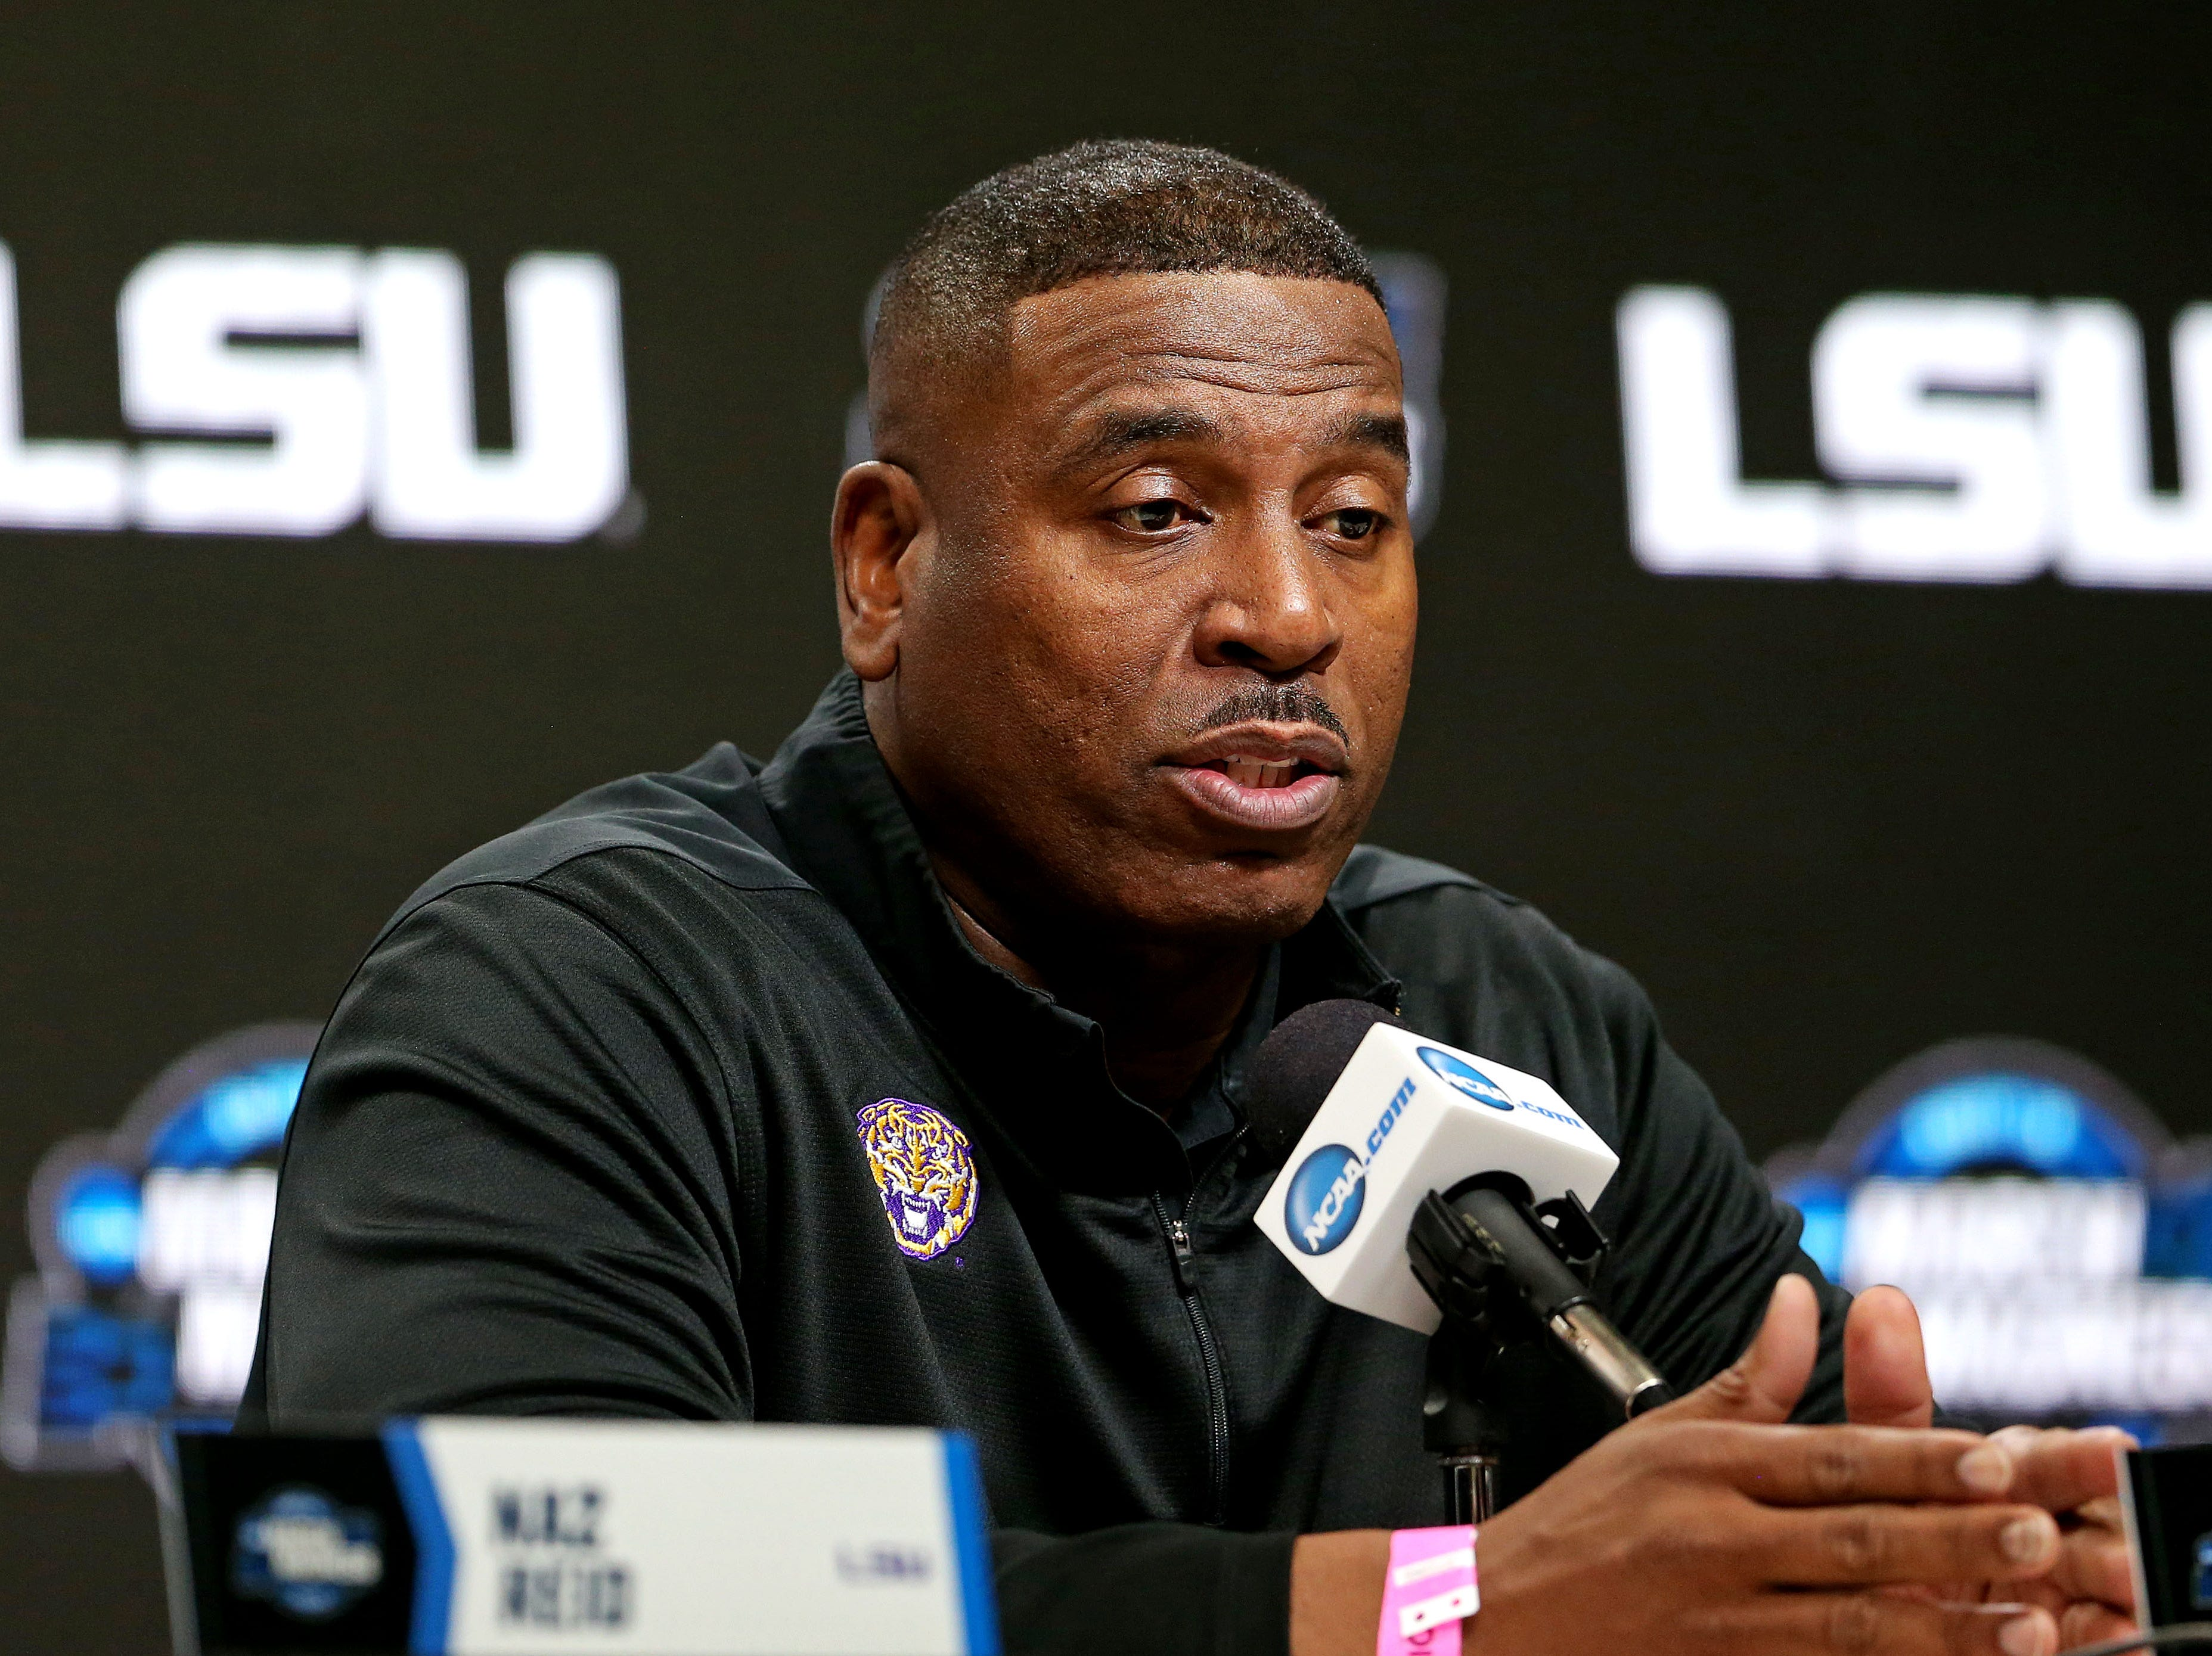 Mar 28, 2019; Washington, DC, USA; LSU Tigers interim head coach Tony Benford speaks in a press conference during practice for the east regional of the 2019 NCAA Tournament at Capital One Arena. Mandatory Credit: Peter Casey-USA TODAY Sports